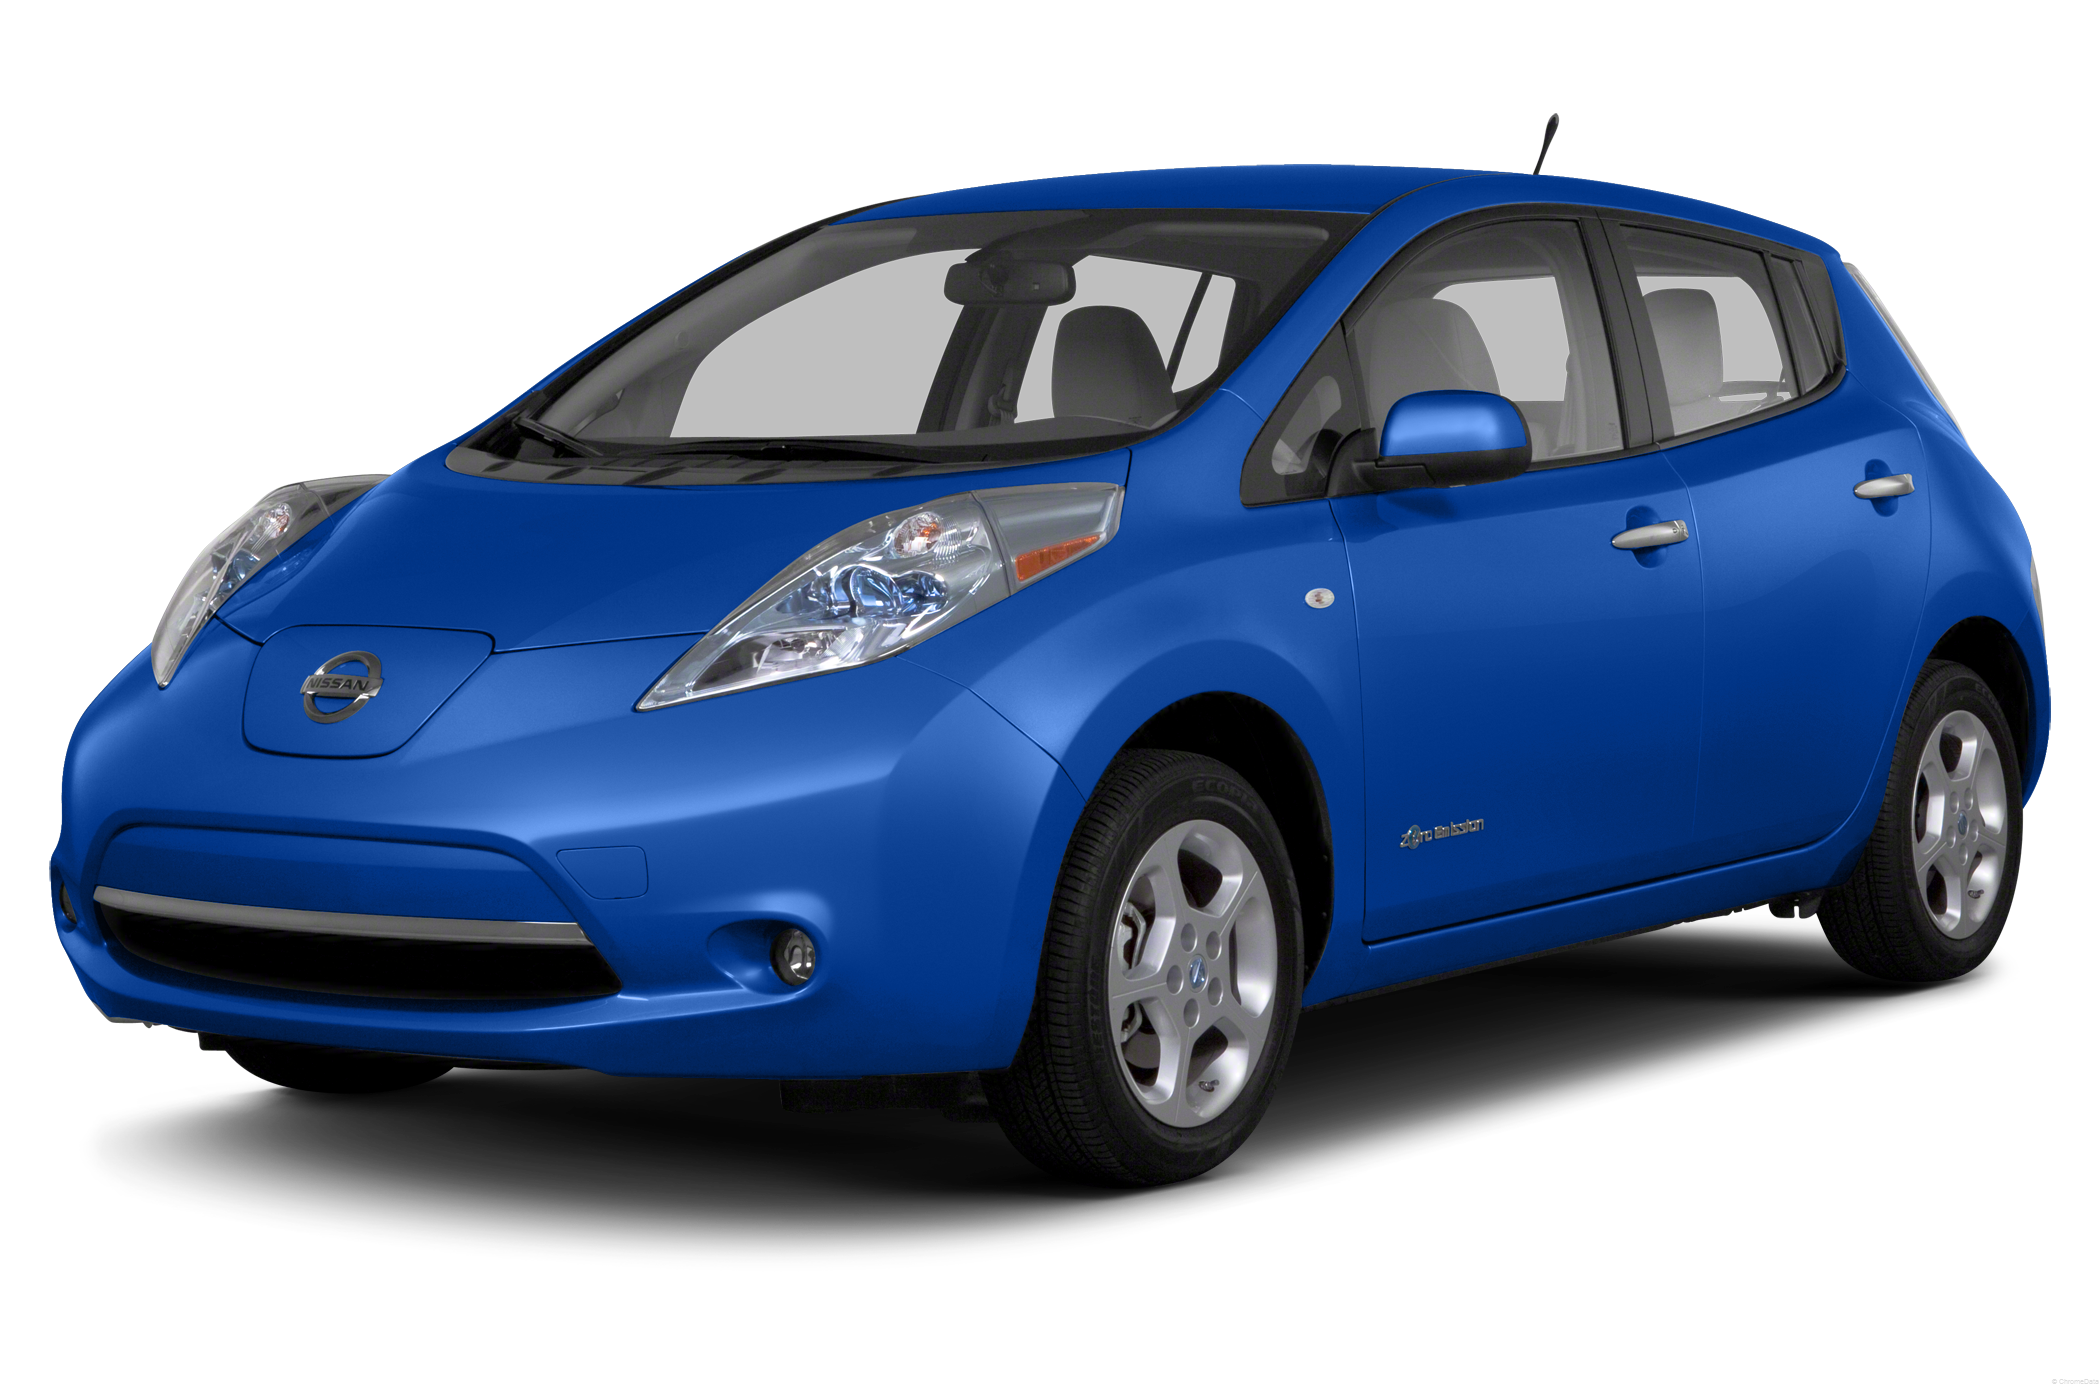 2013 nissan leaf png choice image hd cars wallpaper 2013 nissan leaf png images hd cars wallpaper 2013 nissan leaf png gallery hd cars wallpaper vanachro Choice Image